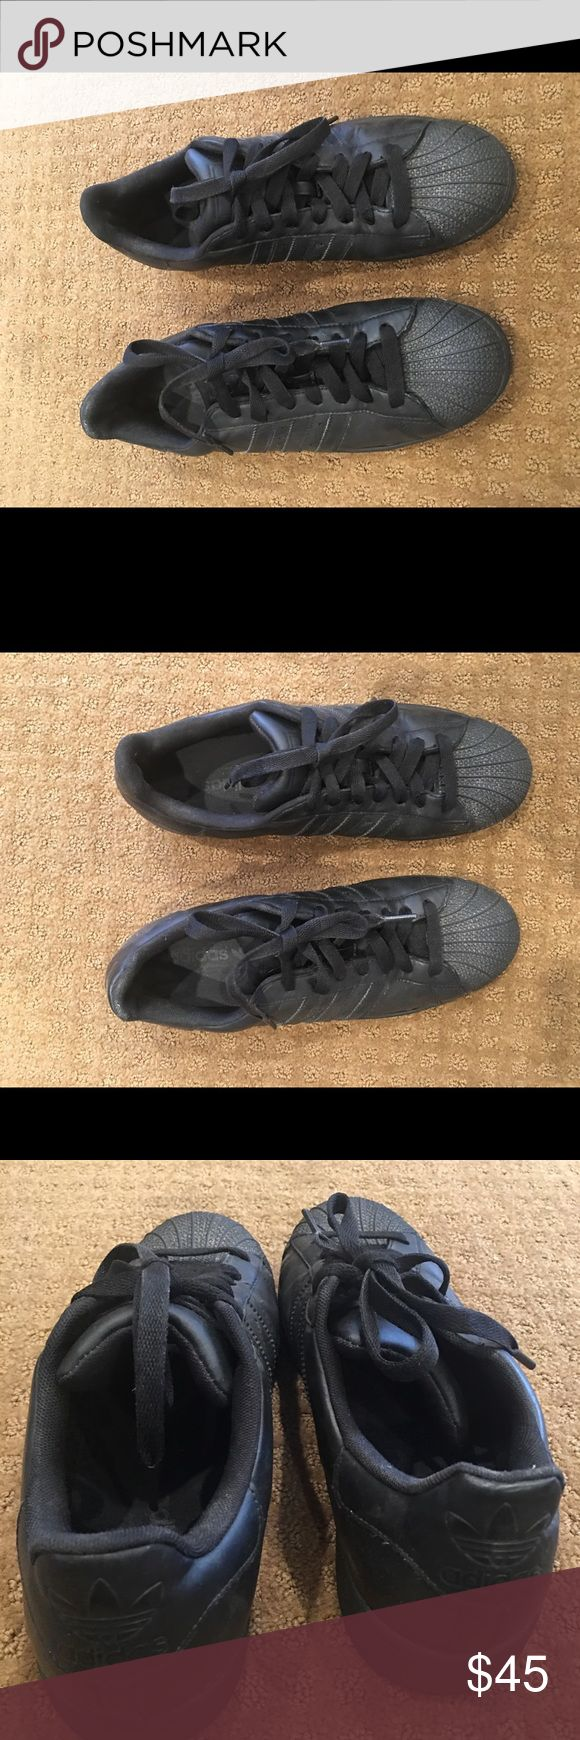 Men's all black adidas superstar size 10 Men's all black adidas superstar size 10. Light wear, overall good condition, well taken care of. Please feel free to ask questions or make an offer. adidas Shoes Sneakers